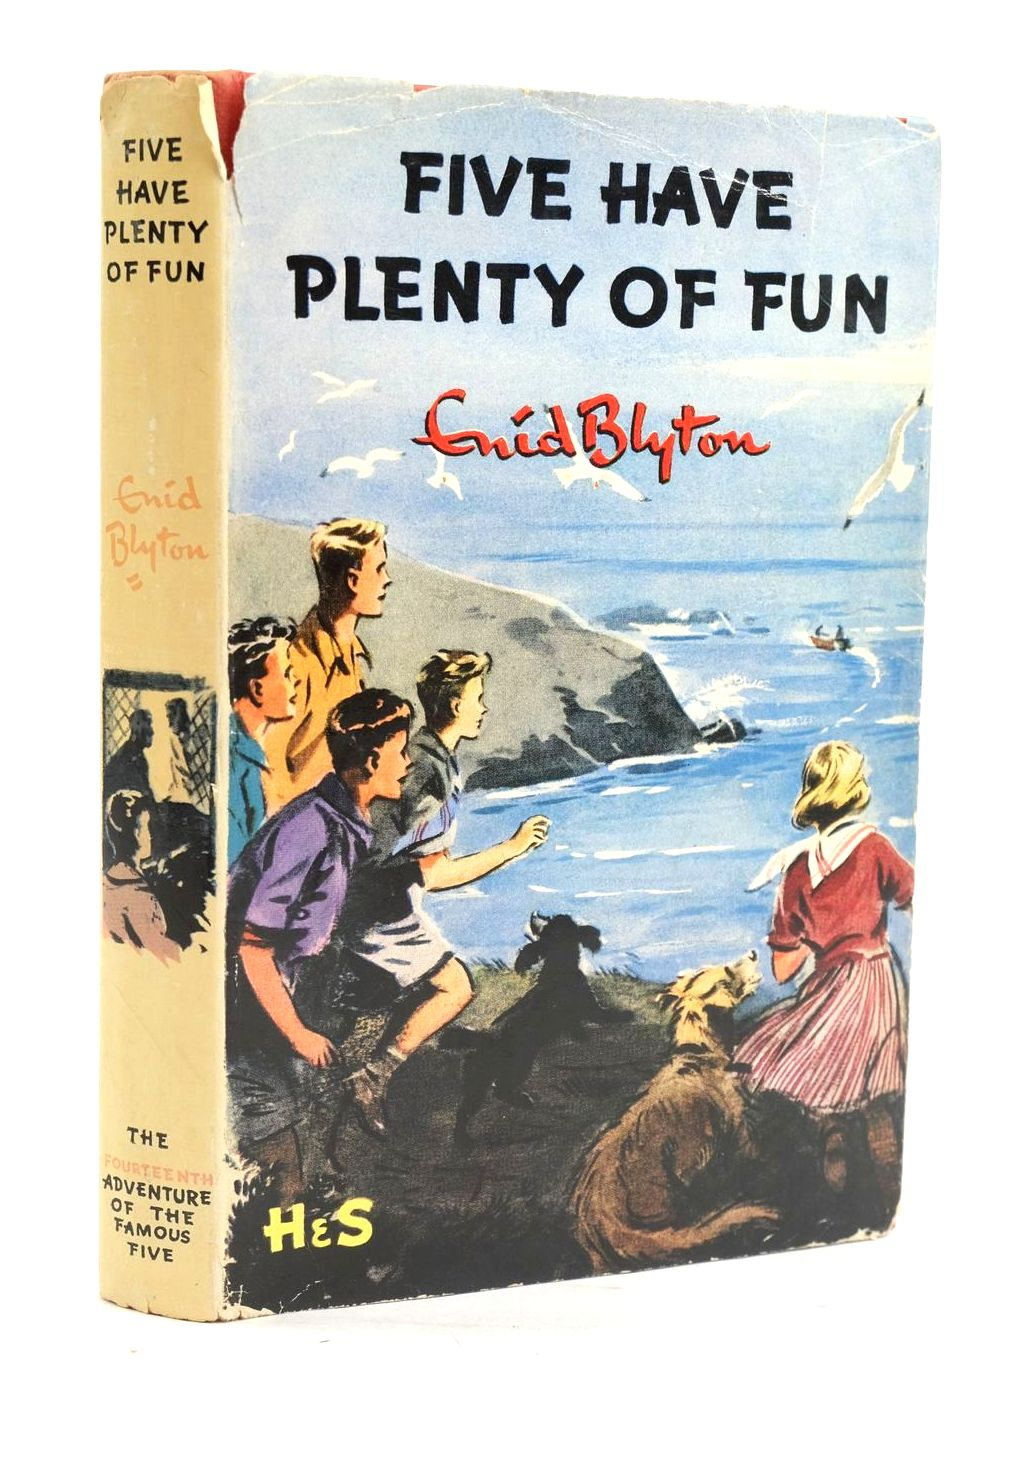 Photo of FIVE HAVE PLENTY OF FUN written by Blyton, Enid illustrated by Soper, Eileen published by Hodder & Stoughton (STOCK CODE: 1319950)  for sale by Stella & Rose's Books